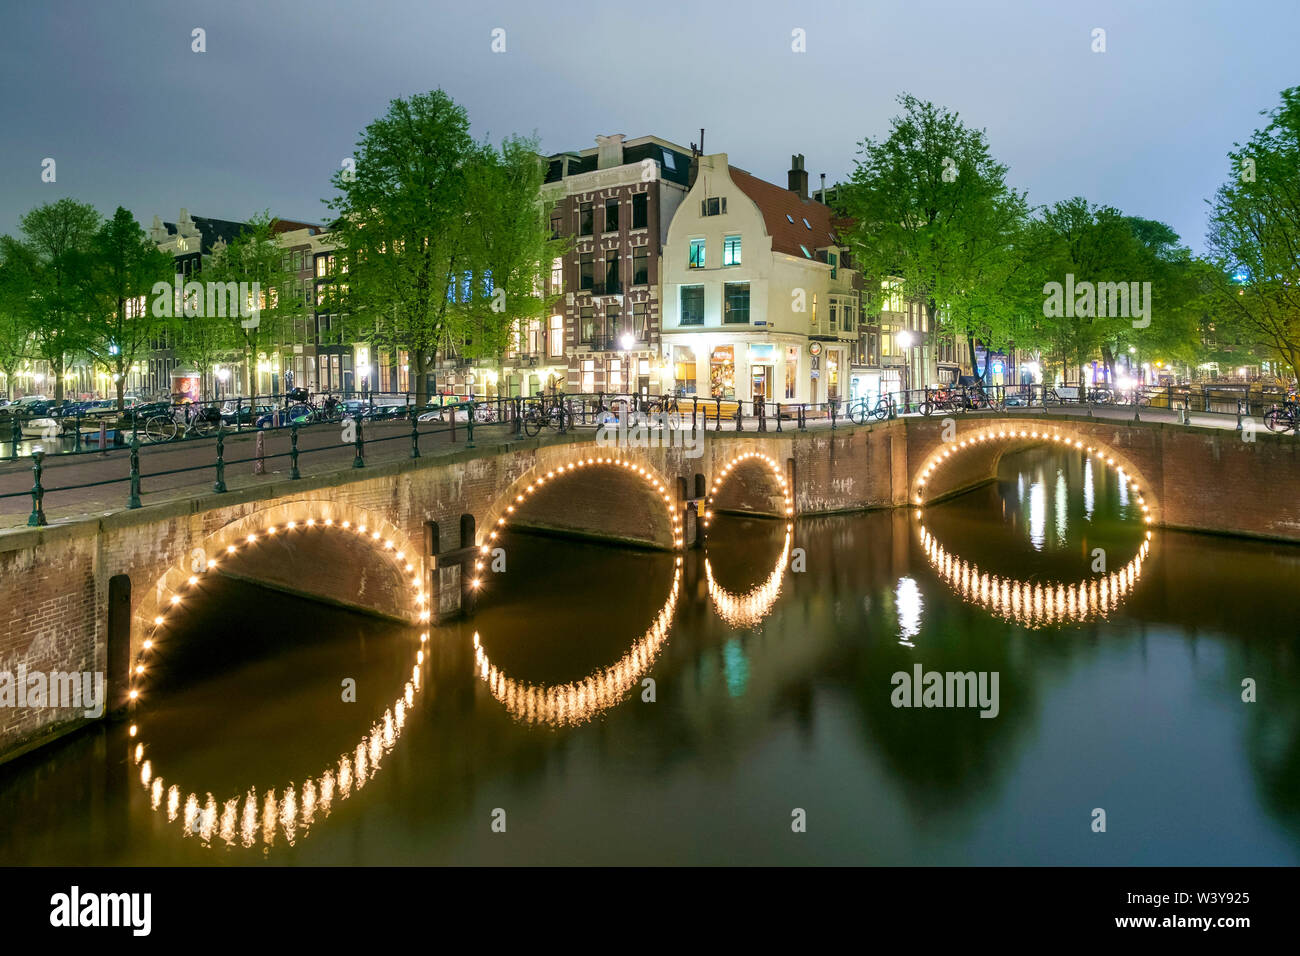 Intersection of Keizersgracht and Leliegracht at night, Amsterdam, North Holland, Netherlands - Stock Image